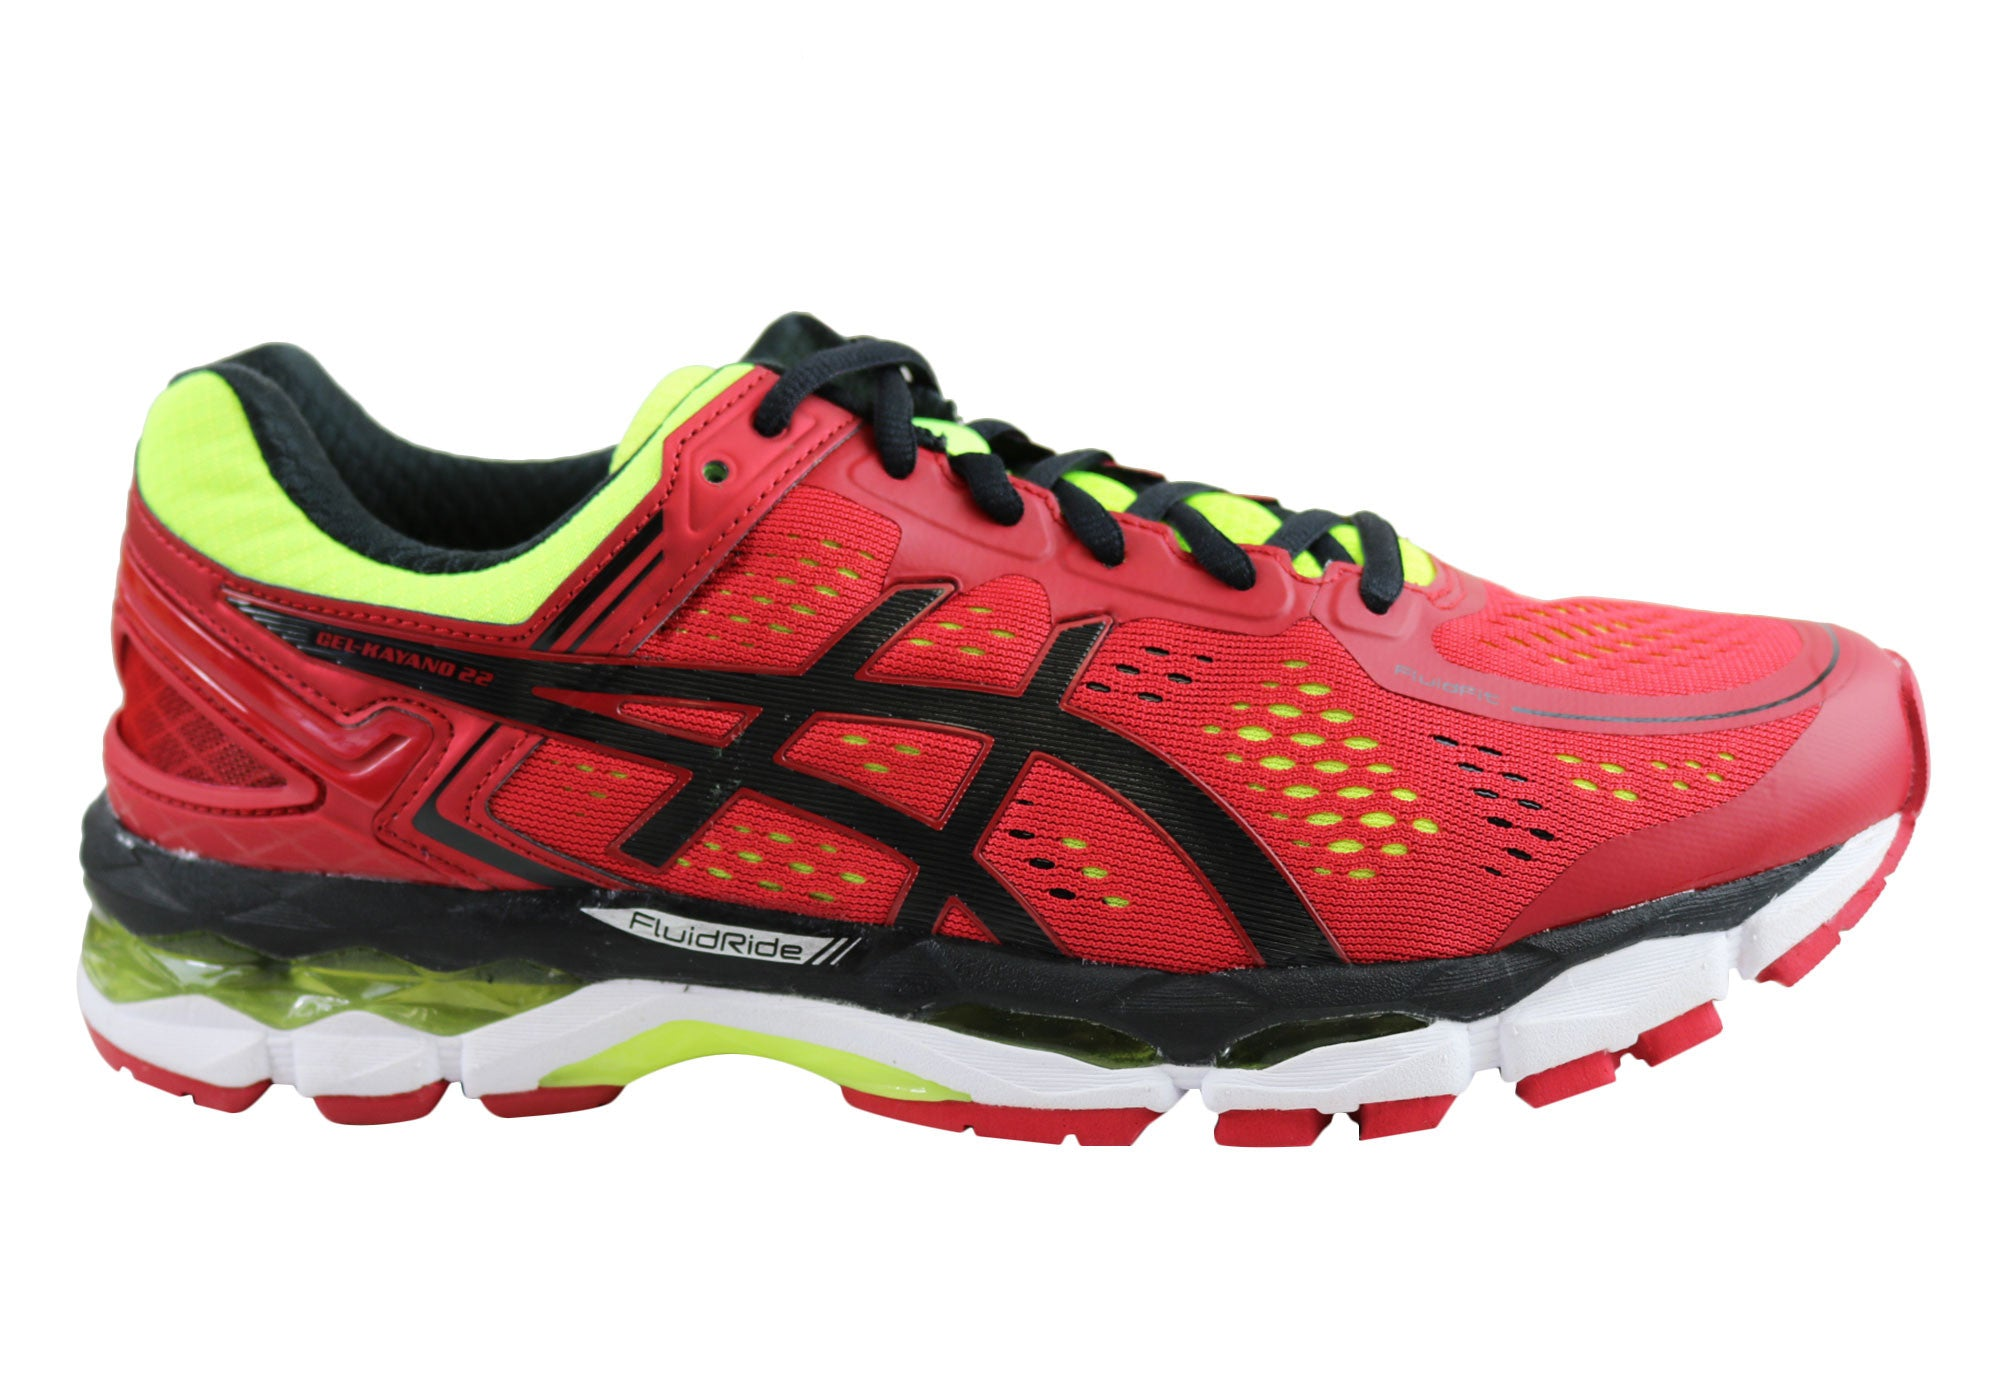 2facb51d0457 ... order new asics gel kayano 22 mens premium cushioned 66538 c422c